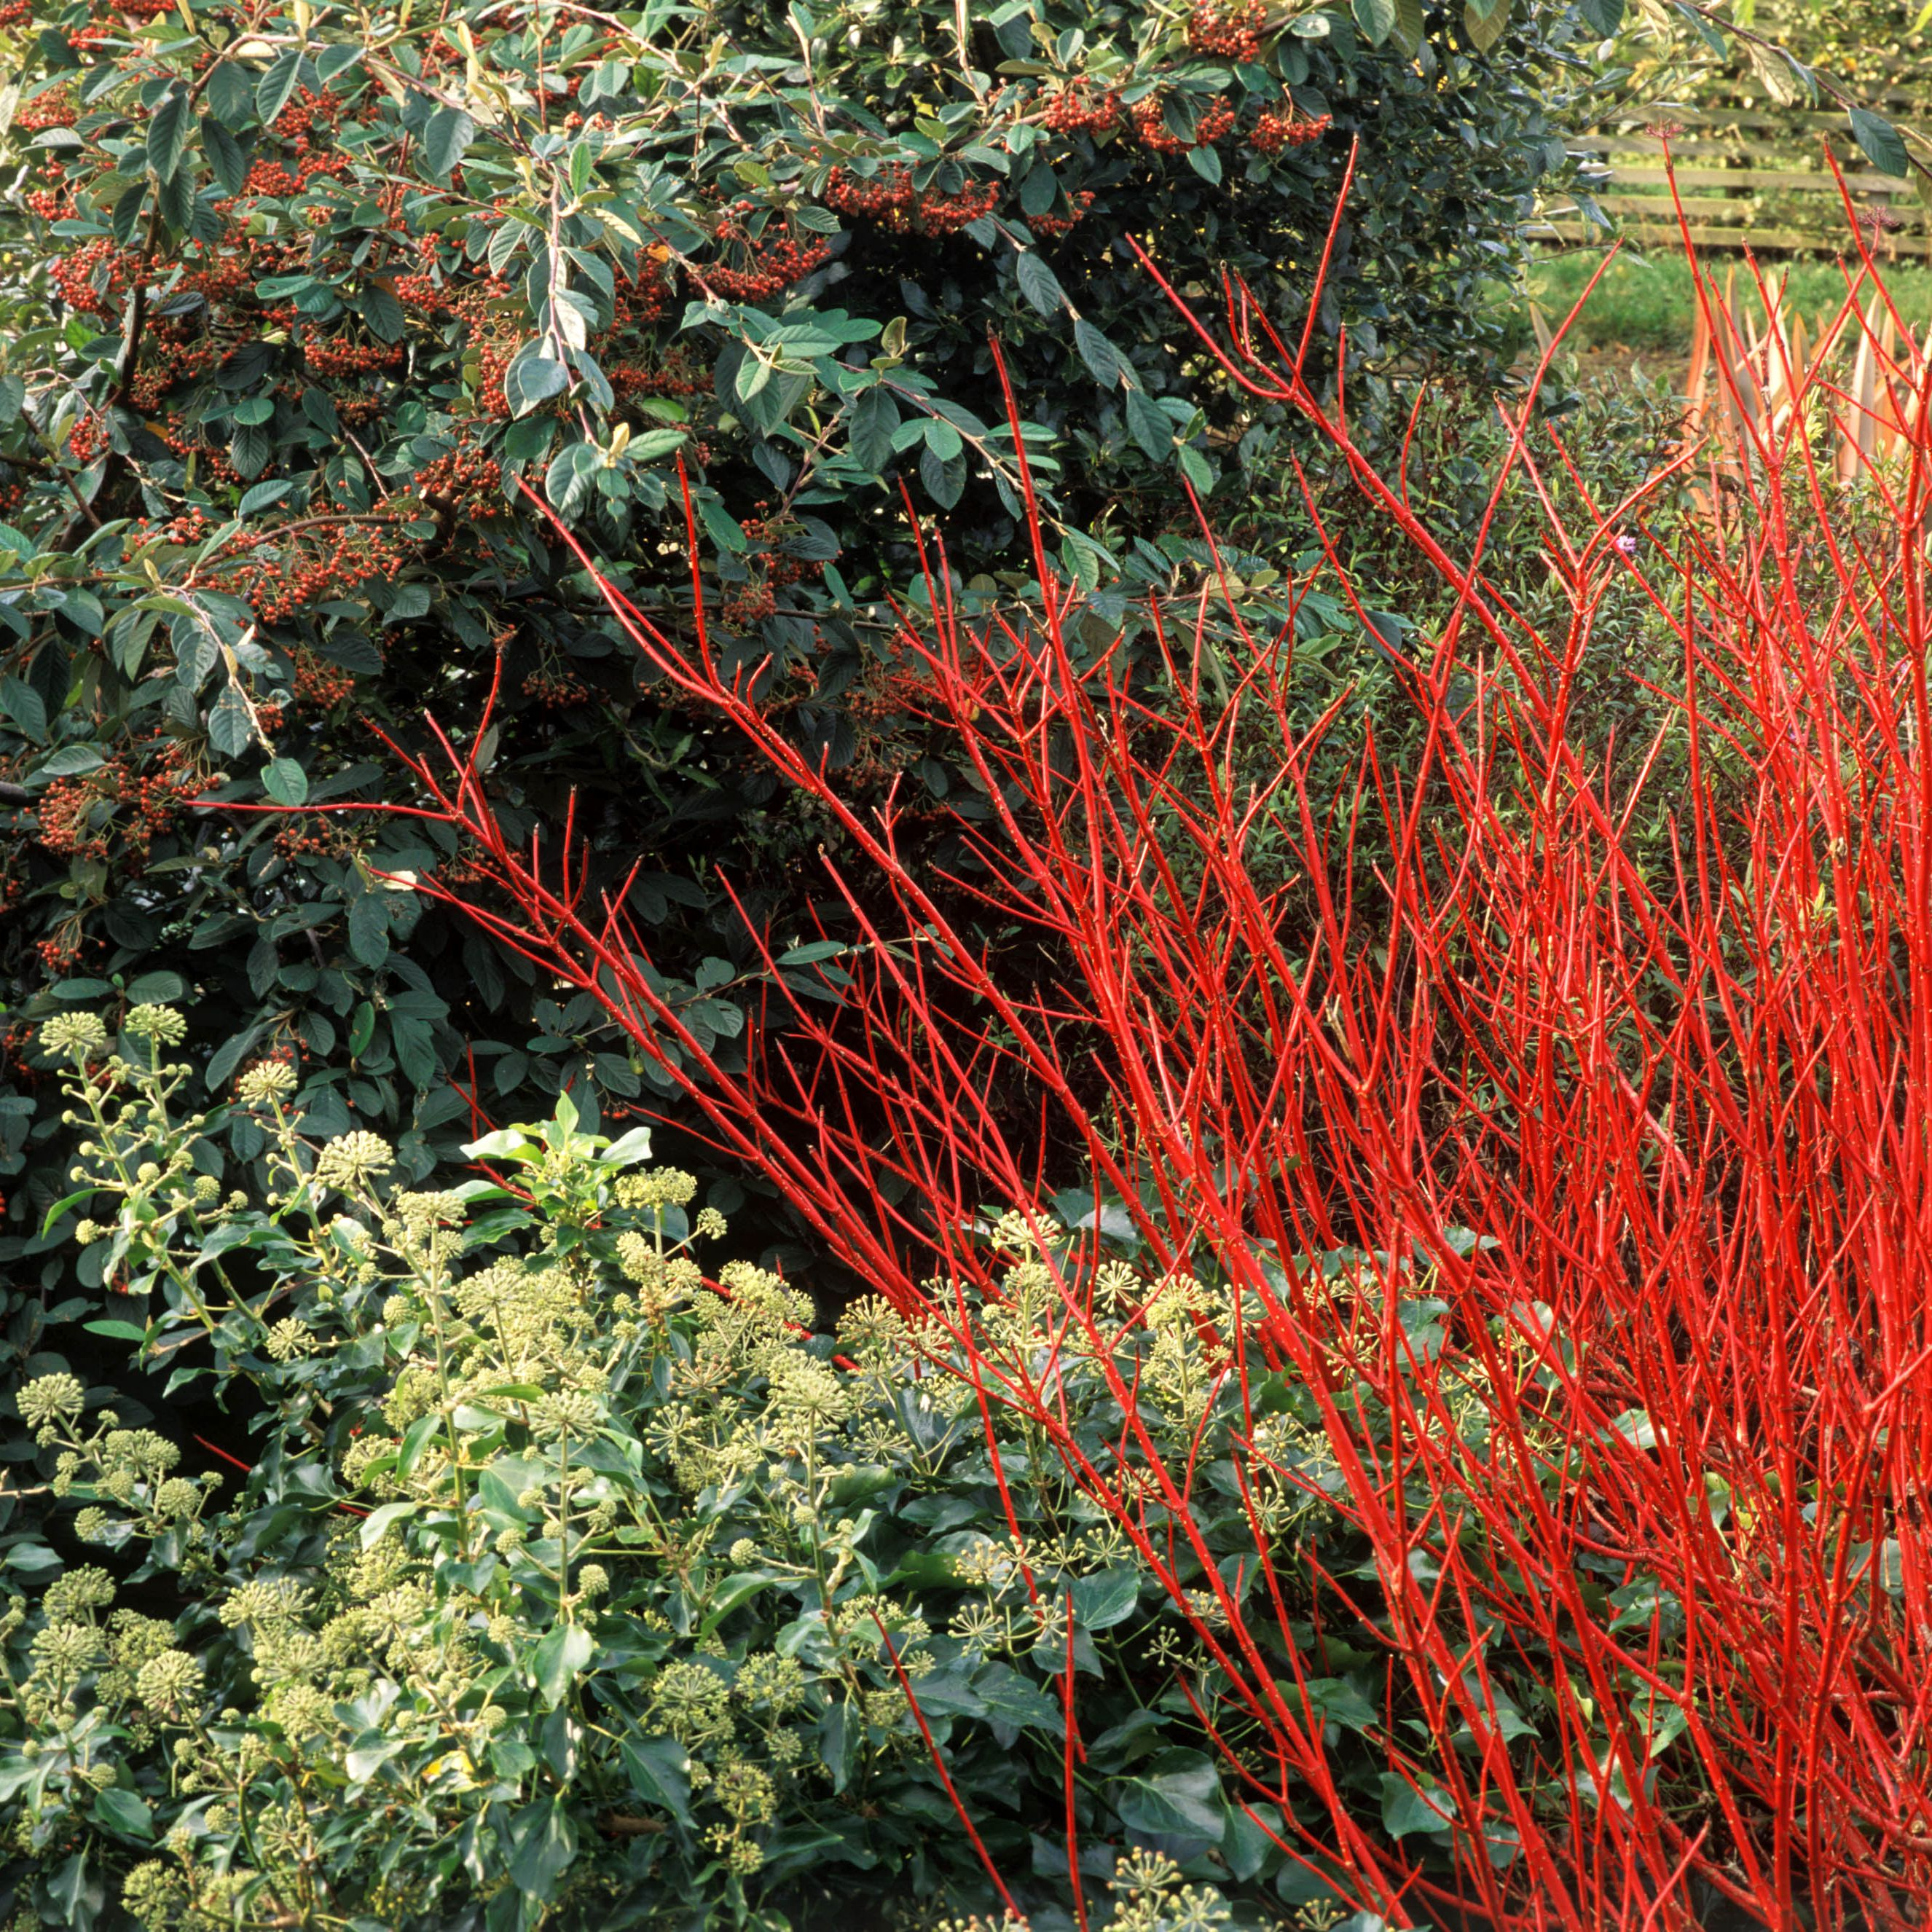 Care And Growing Guide For Red Twig Dogwood Shrubs